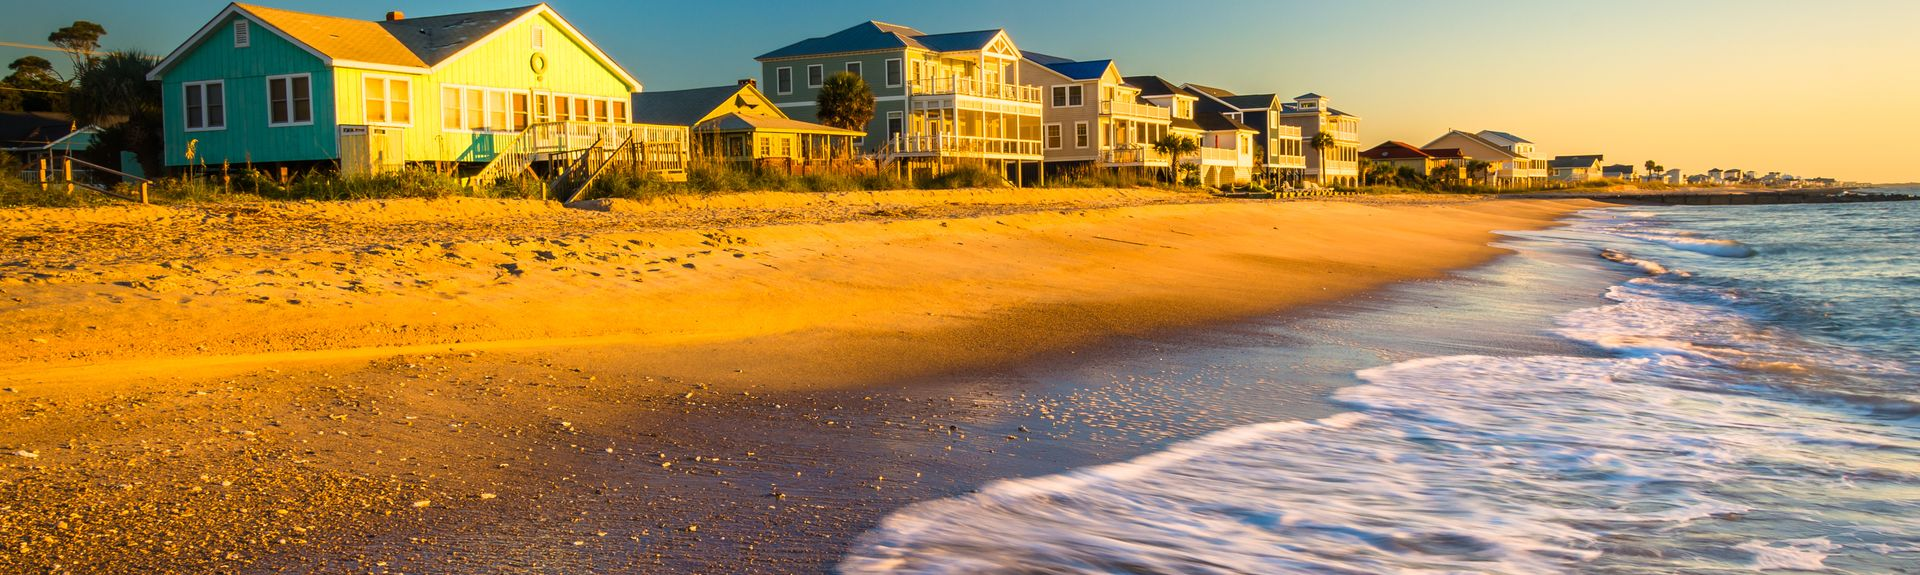 Edisto, South Carolina, Stati Uniti d'America